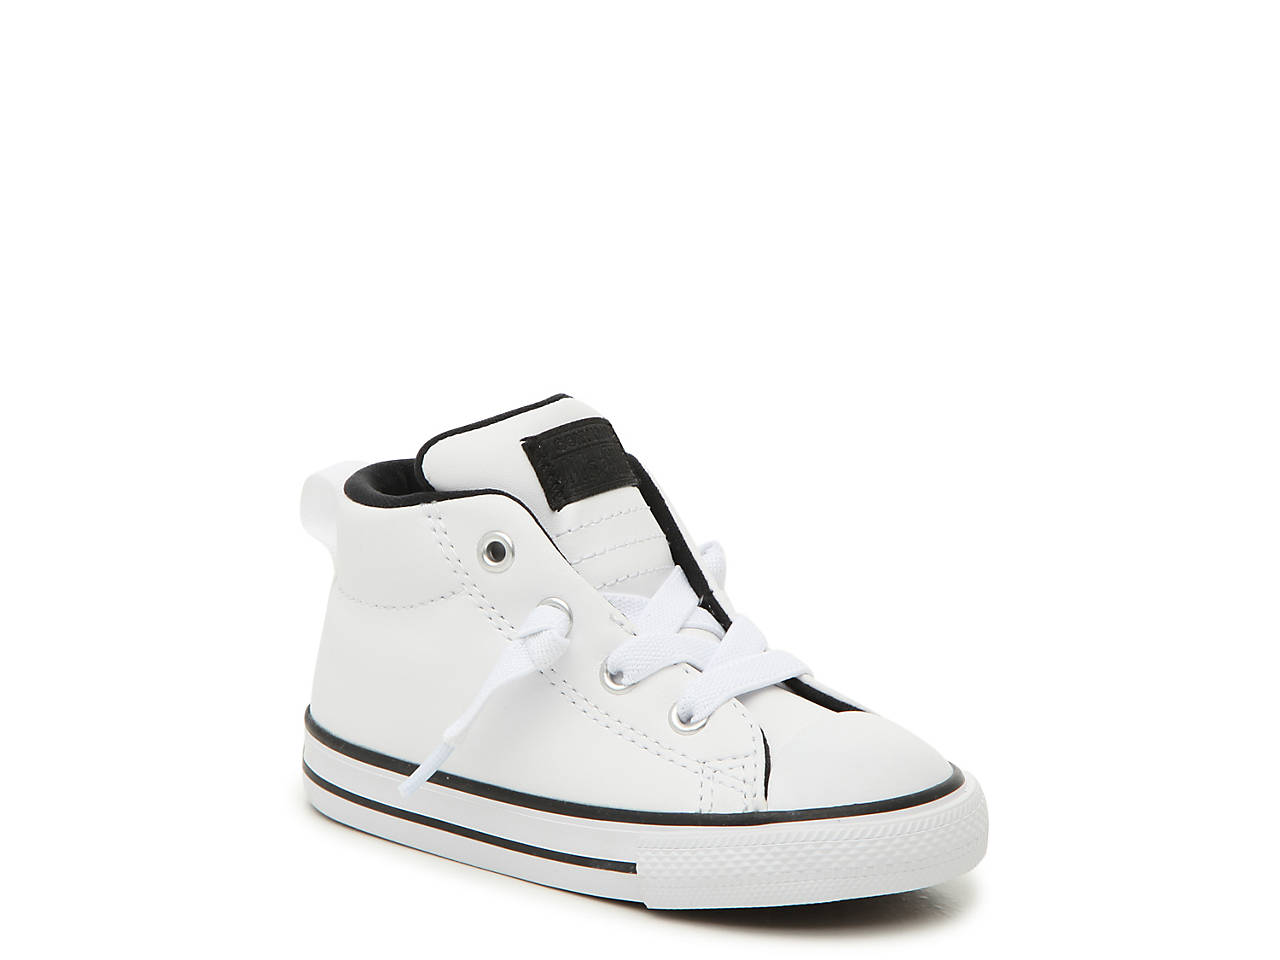 0401df38d81466 Converse Chuck Taylor All Star Street Infant   Toddler Slip-On ...